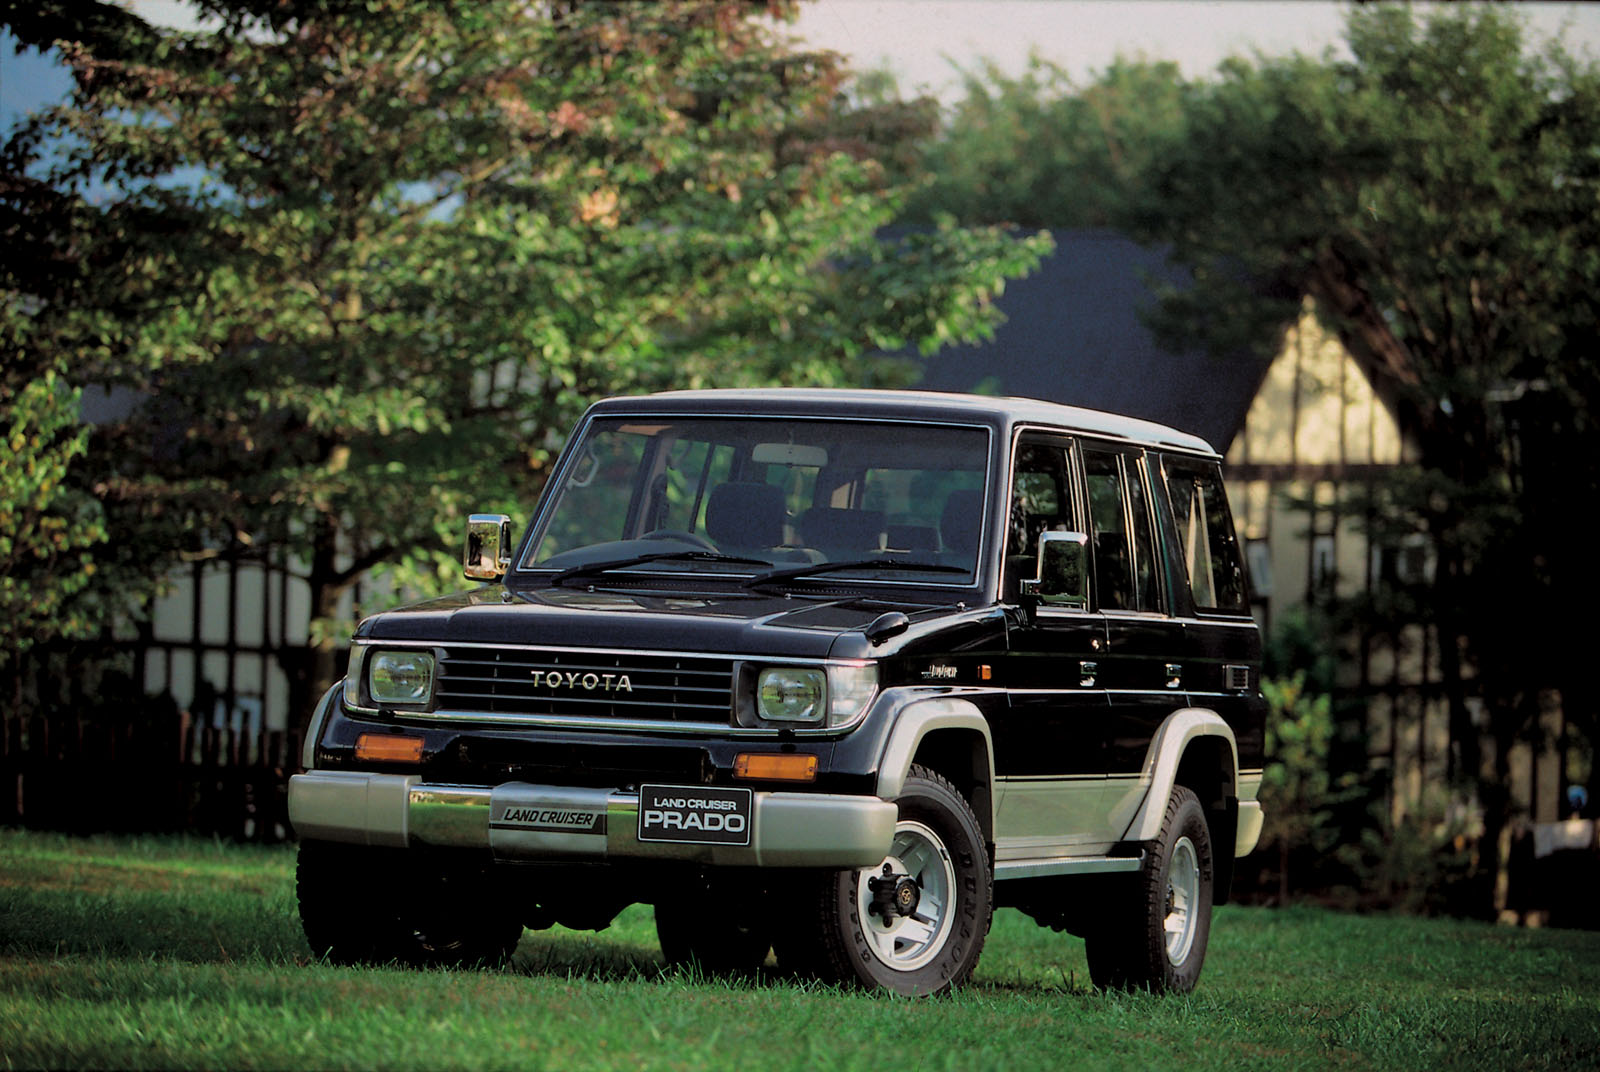 Land Cruiser 70 Series Light Duty / Prado